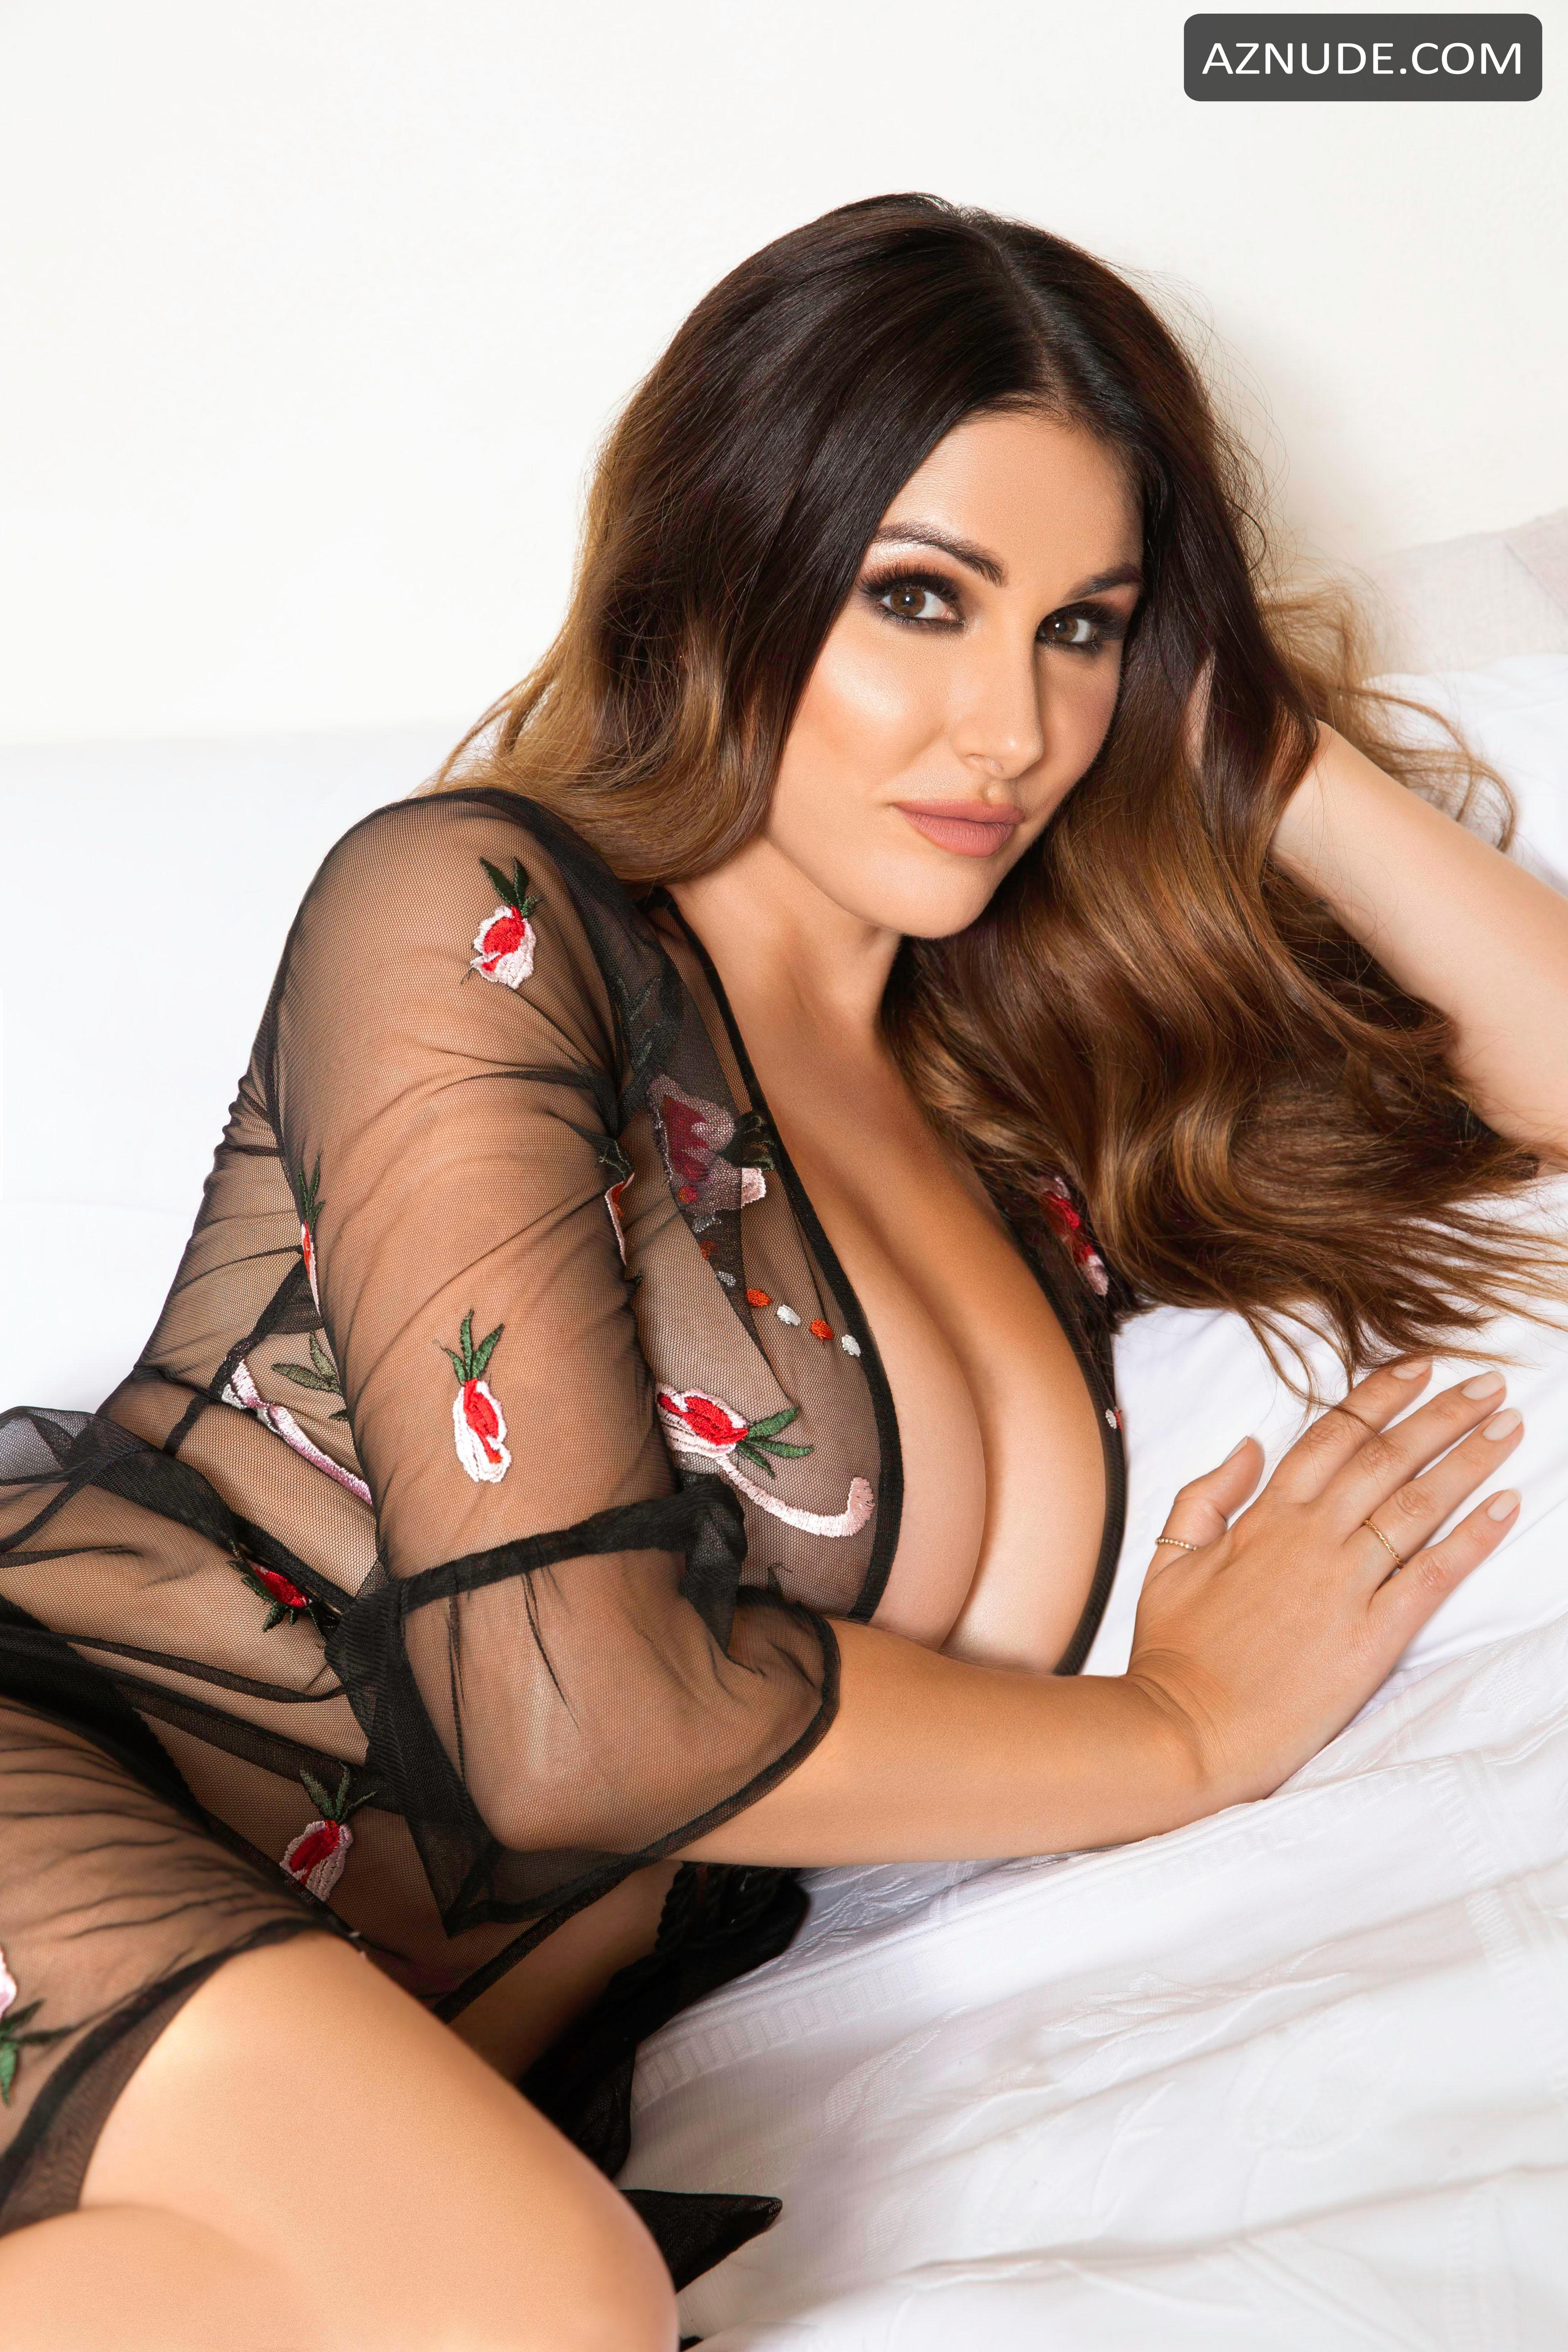 Lucy pinder completely naked nude gallery